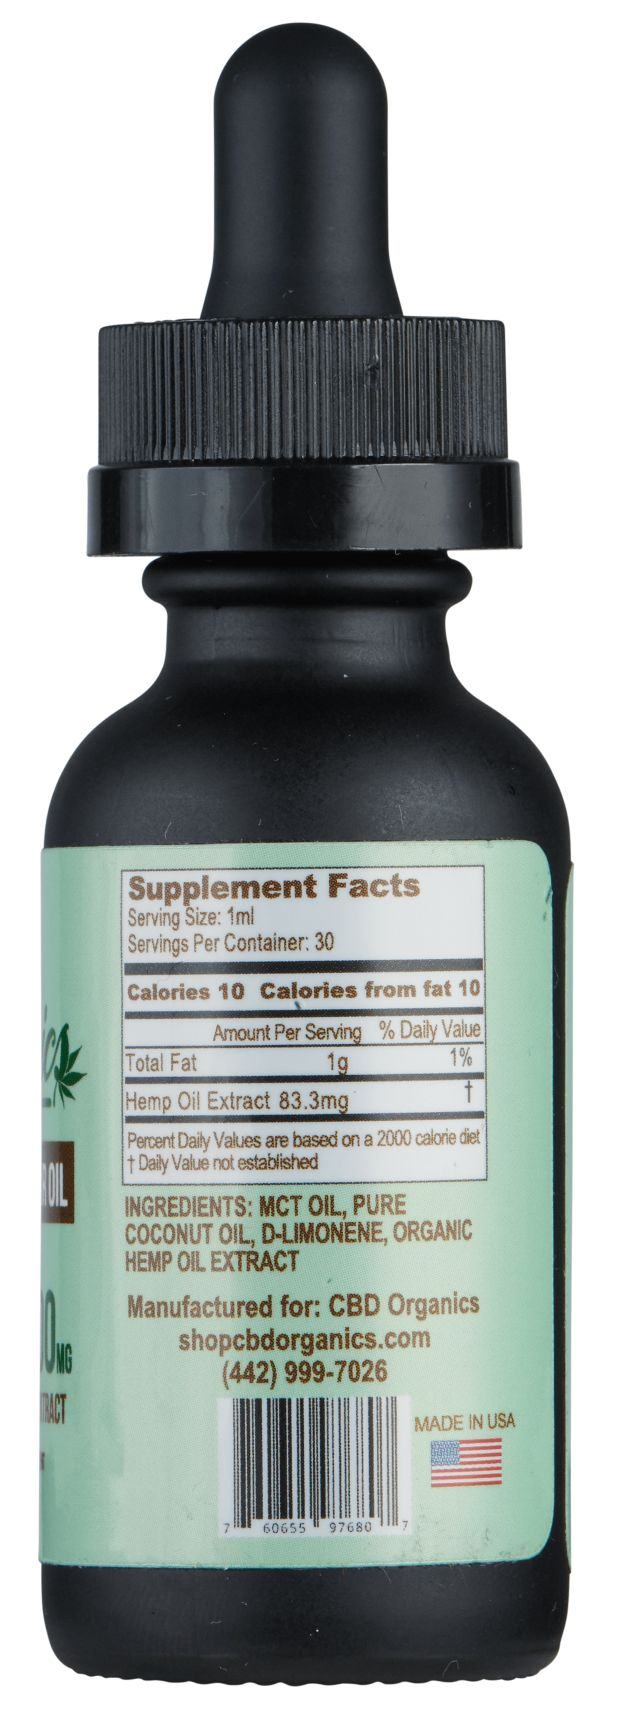 CBD Oil 2500mg - Shop CBD Organics